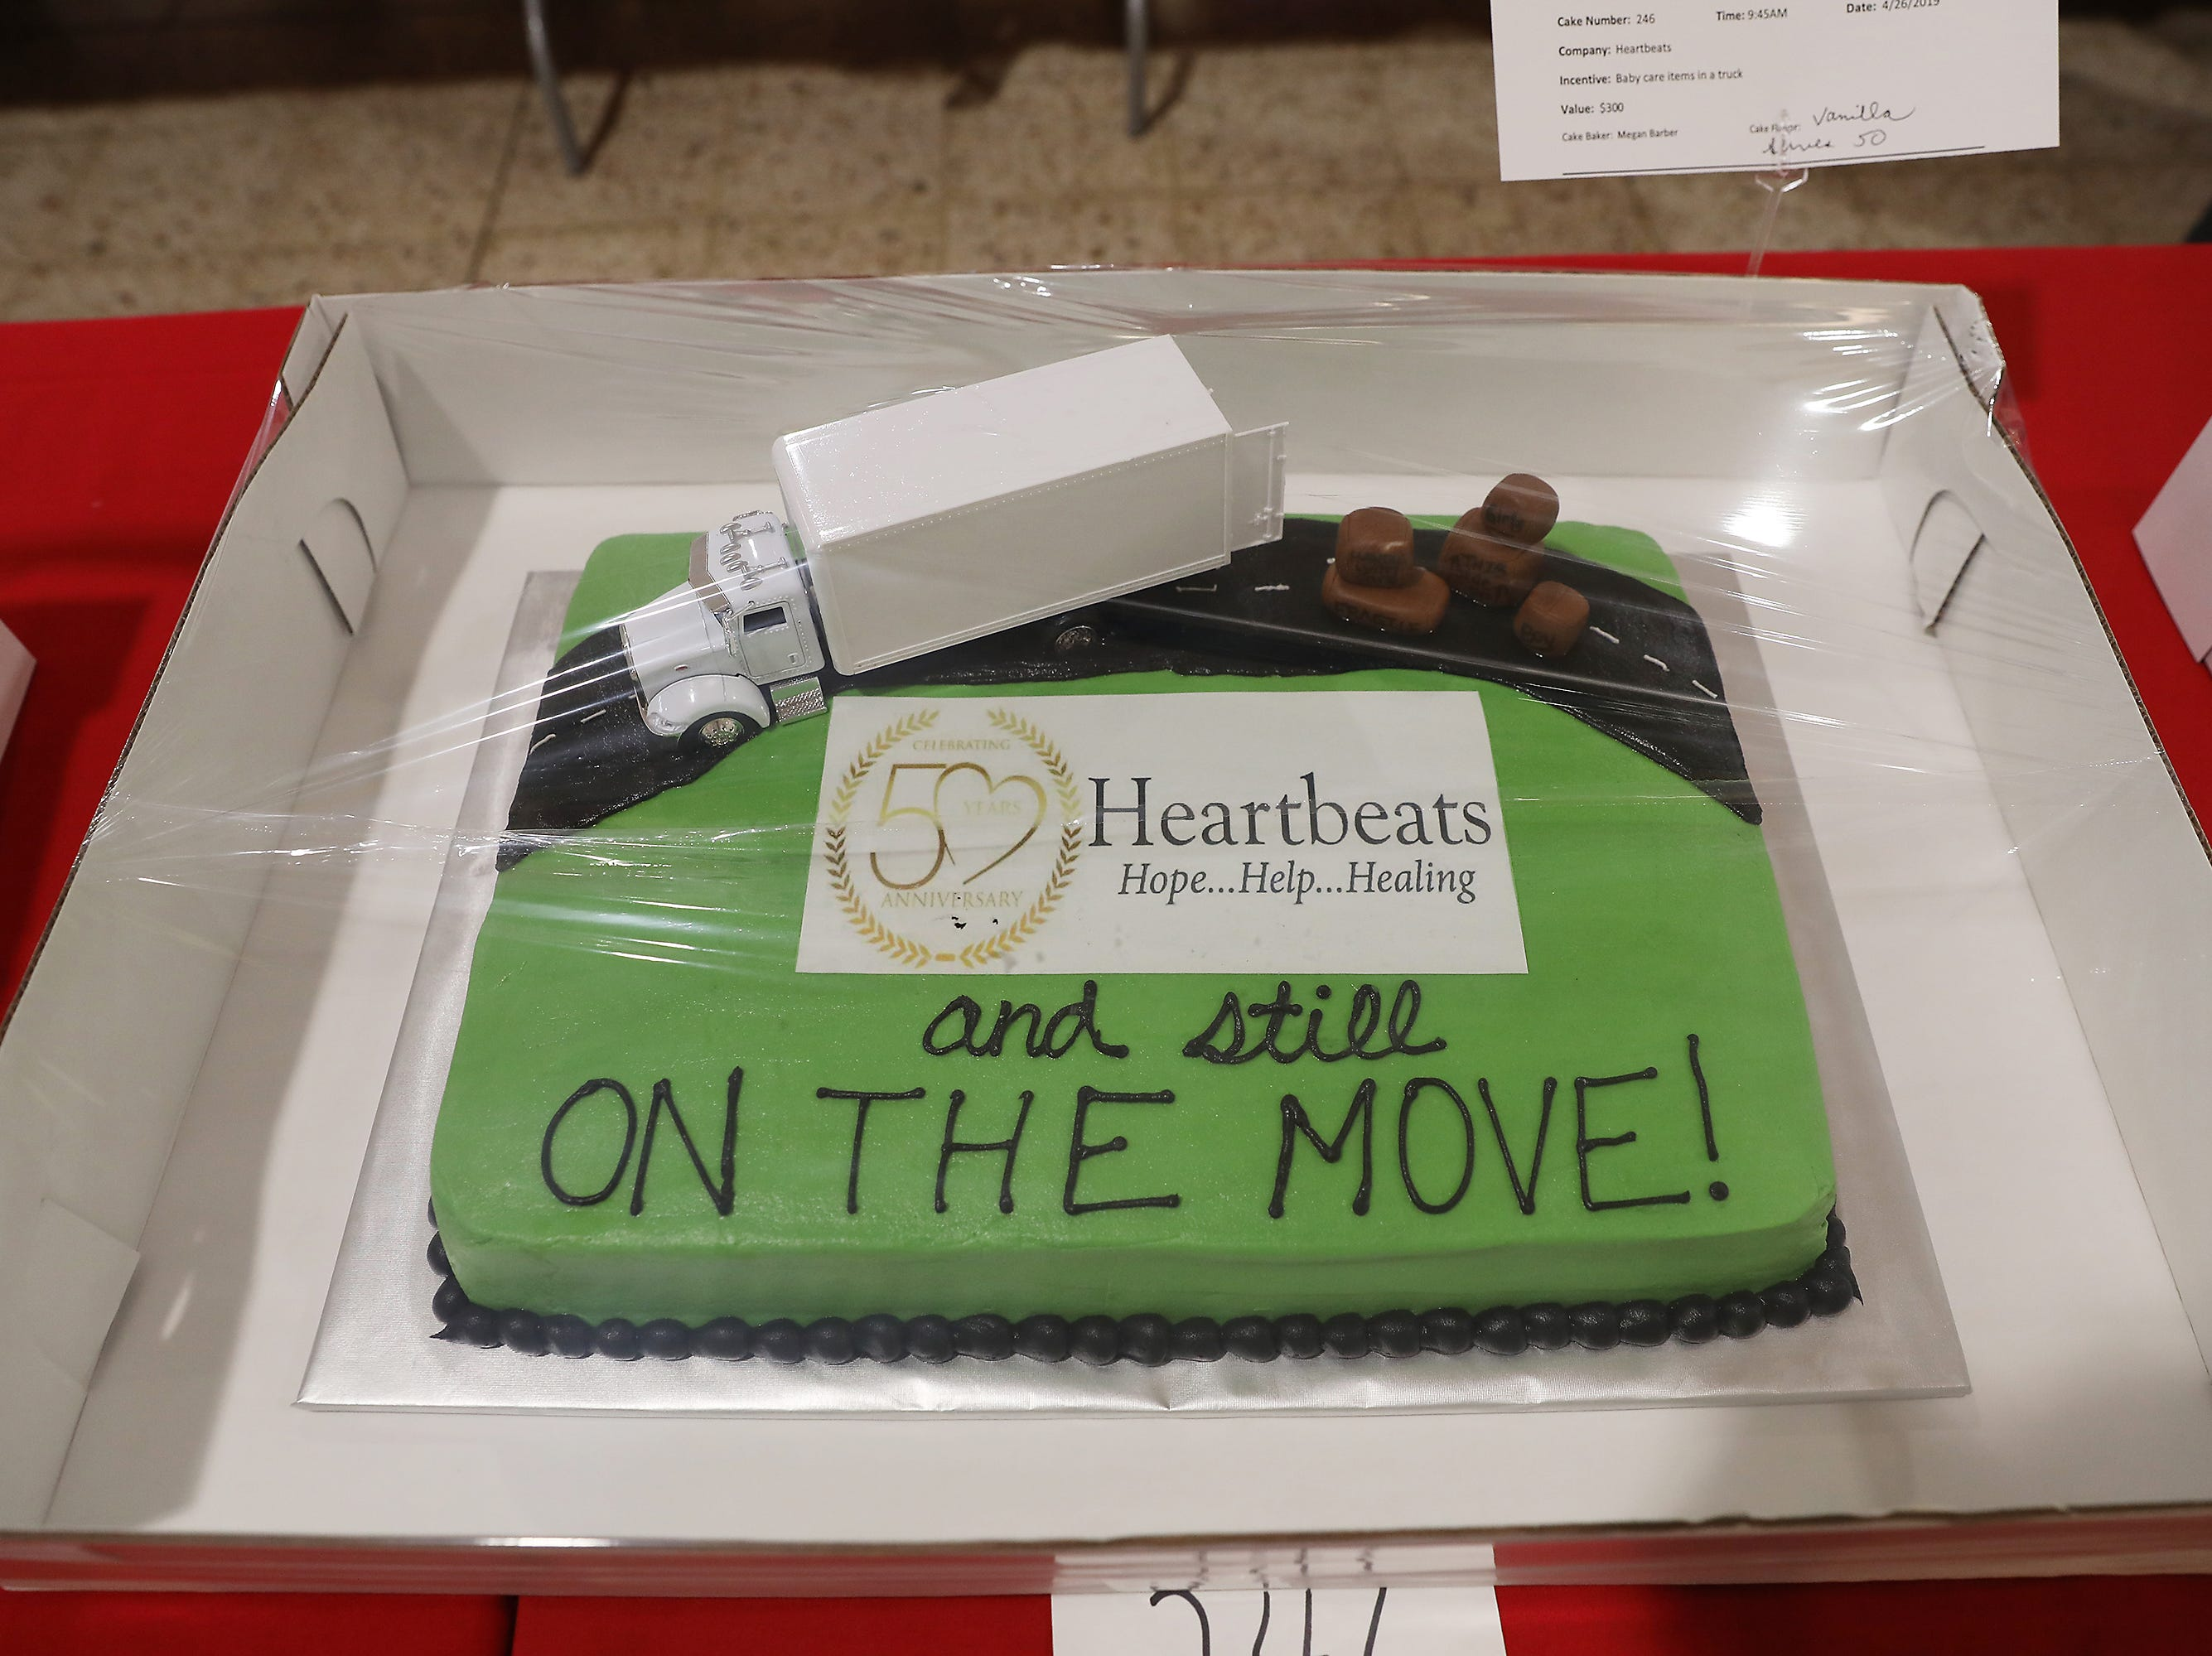 9:45 A.M. Friday cake 246 Heartbeats - baby care items in a truck; $300